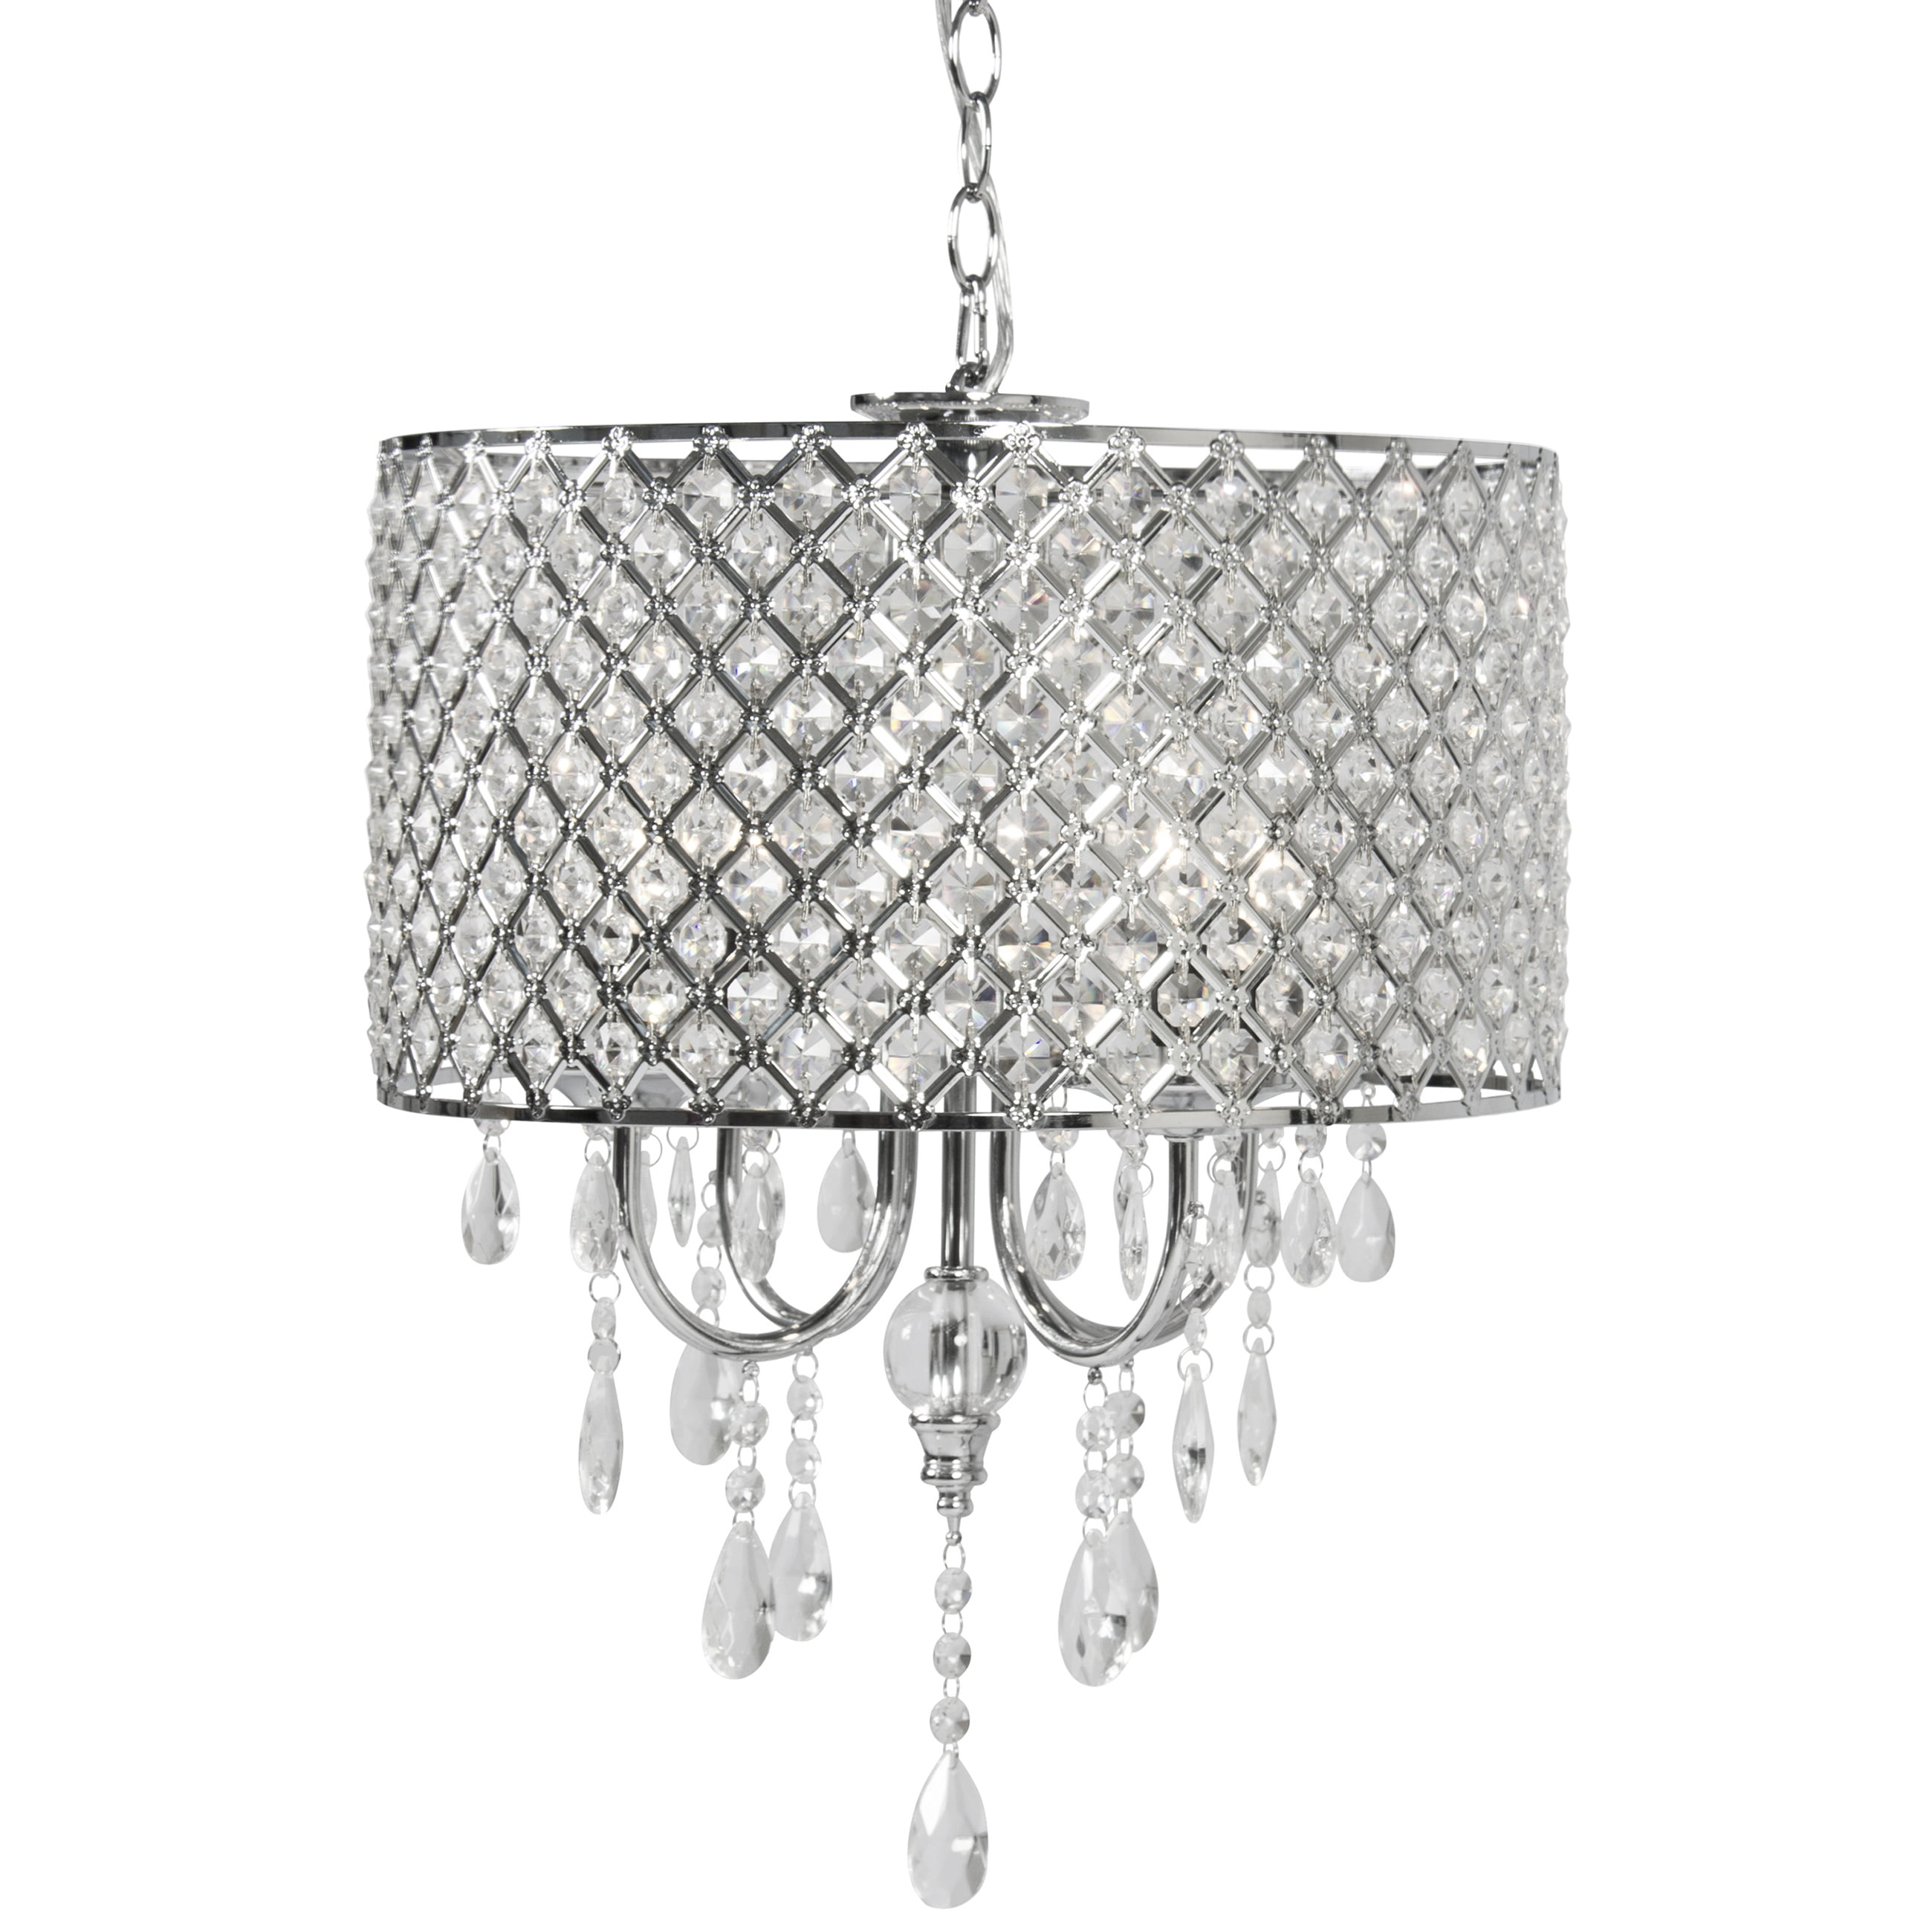 fixture shade light itm drum hot ceiling ebay pendant chandelier crystal lamp lighting